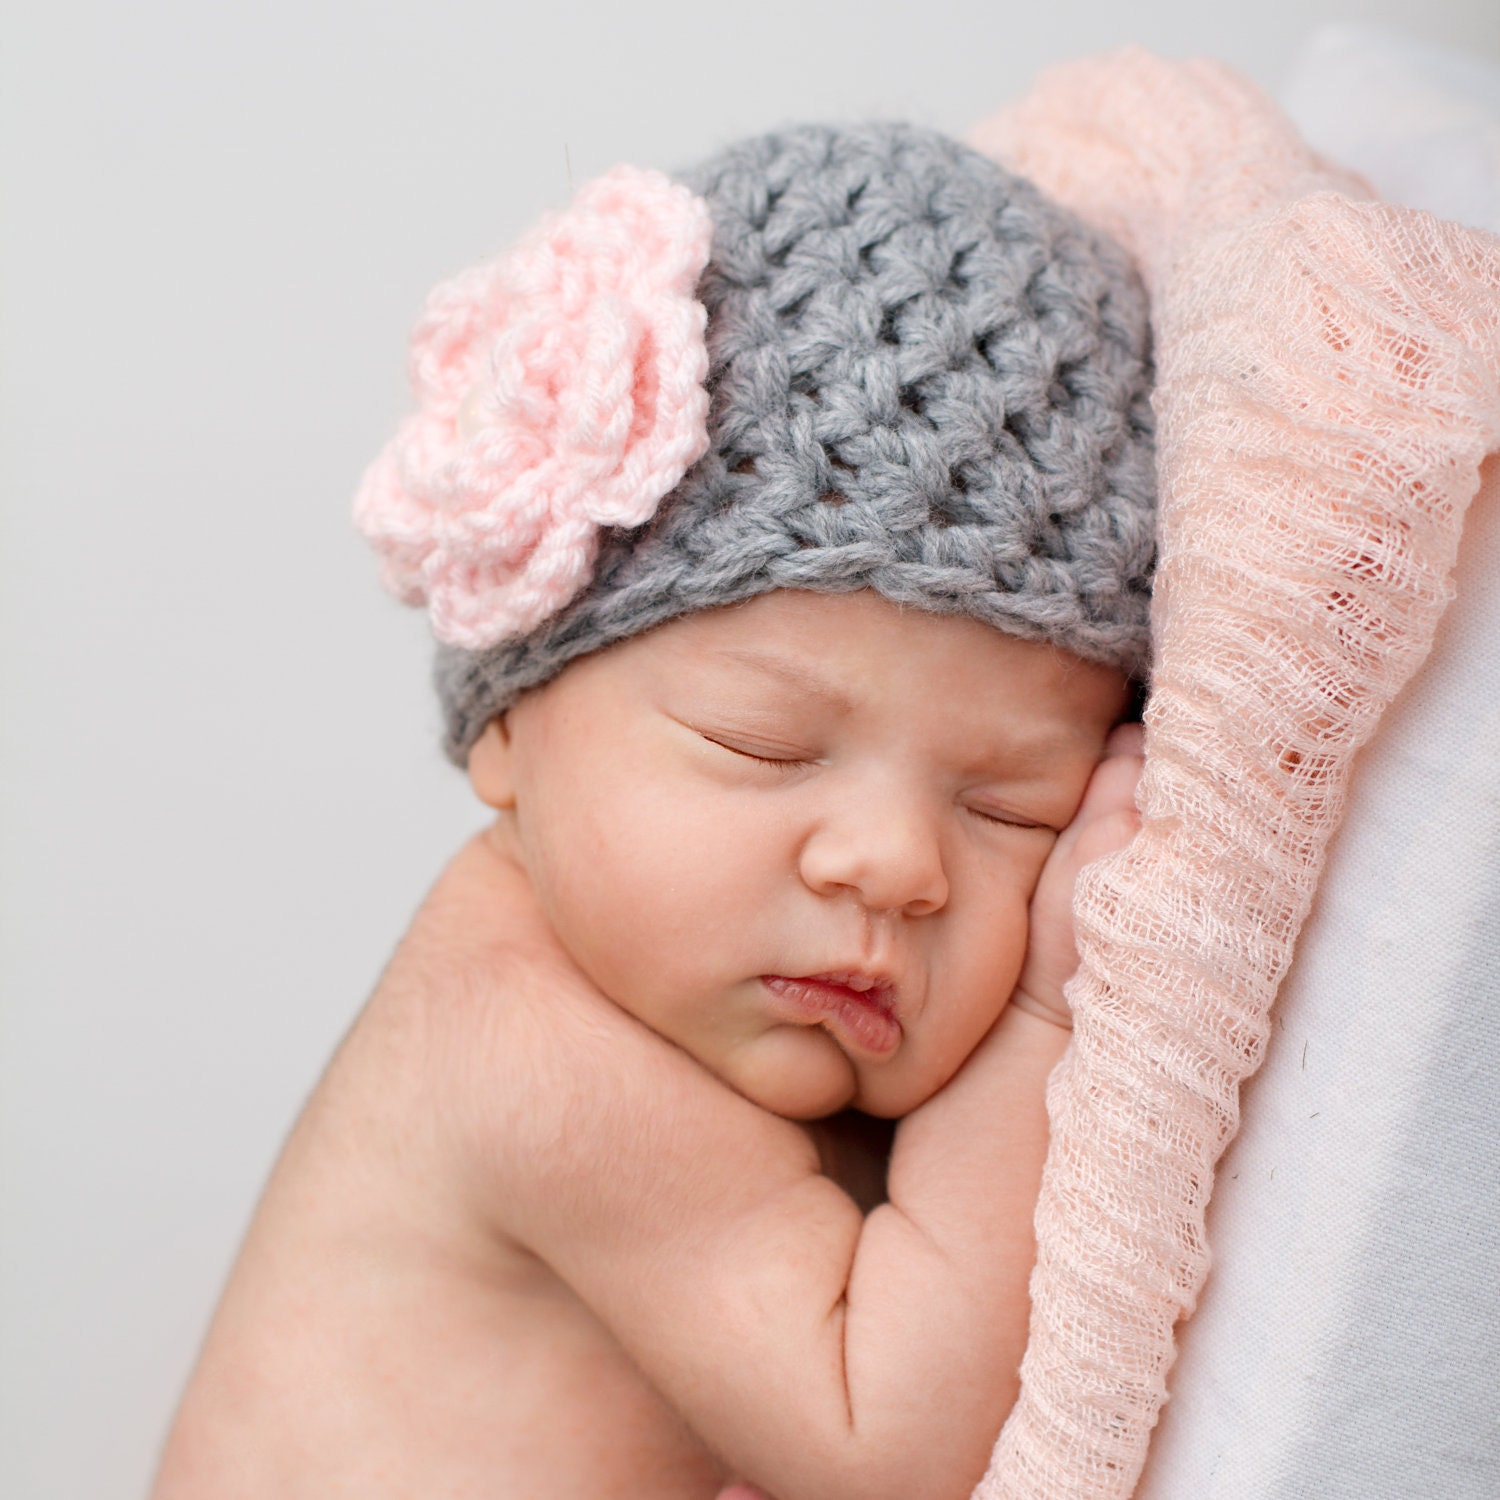 Crochet Pattern Newborn Girl Hat : Items similar to Baby Girl Crochet Knit Hat - Pale Gray ...